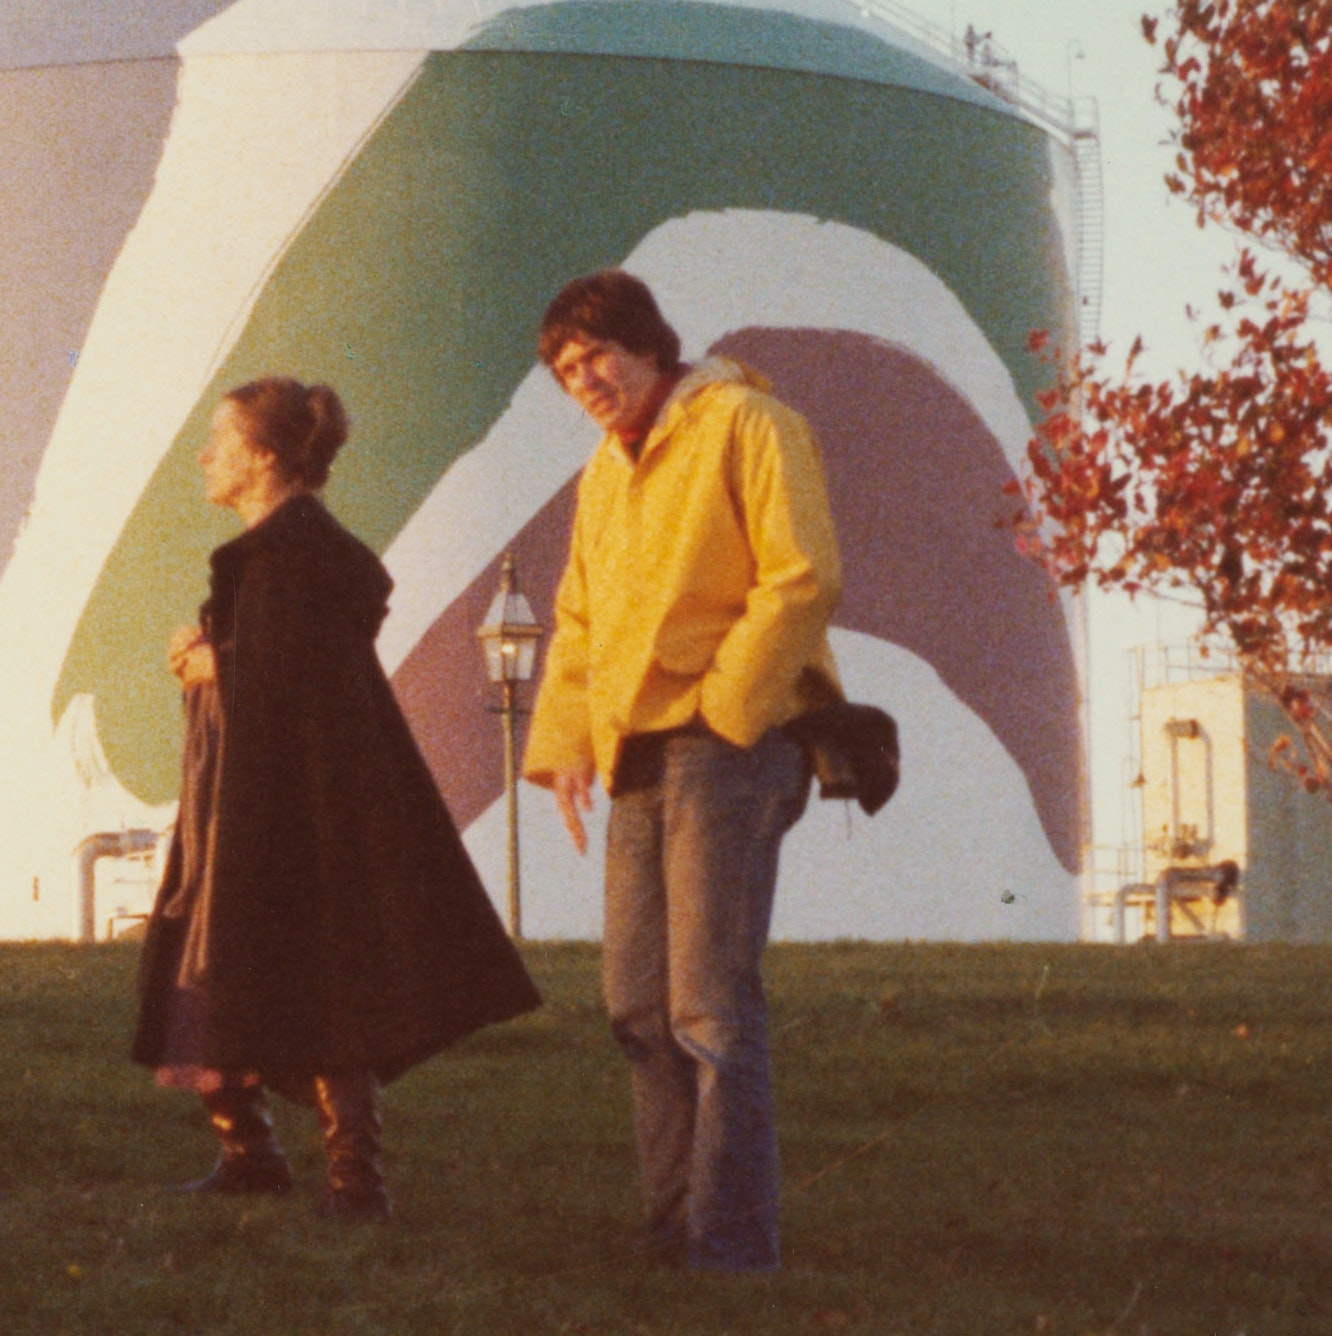 Corita with two others during a photo shoot in front of the Boston Gas tank in Dorchester